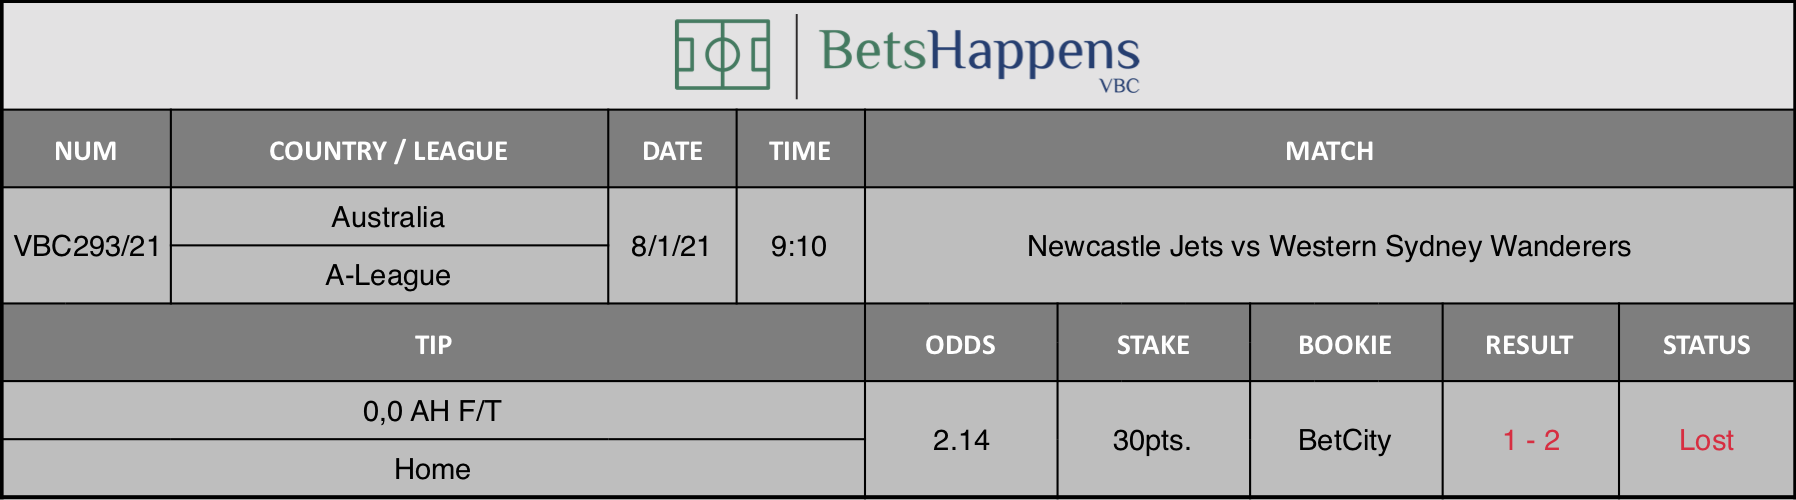 Results of our tip for the Newcastle Jets vs Western Sydney Wanderers  match where 0,0 AH F/T  Home is recommended.